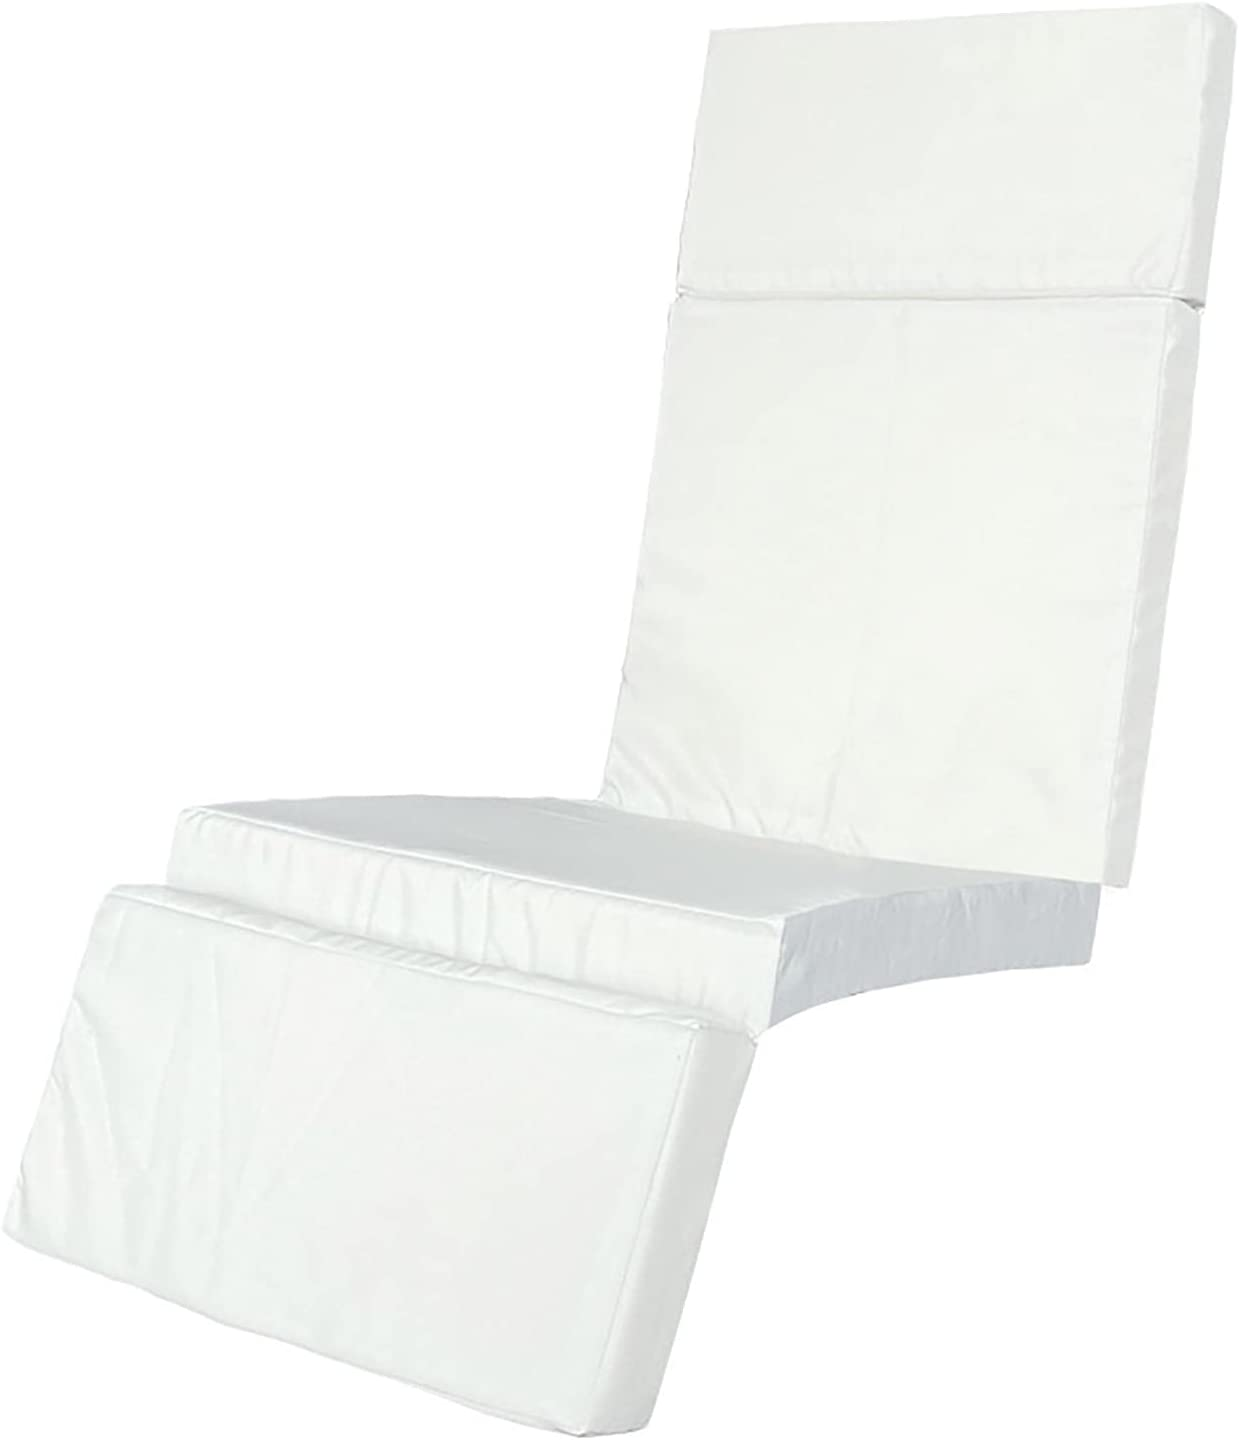 Ksruee Foldable High Back Chair Spring new work one after Jacksonville Mall another Outdoor Cushion Garde